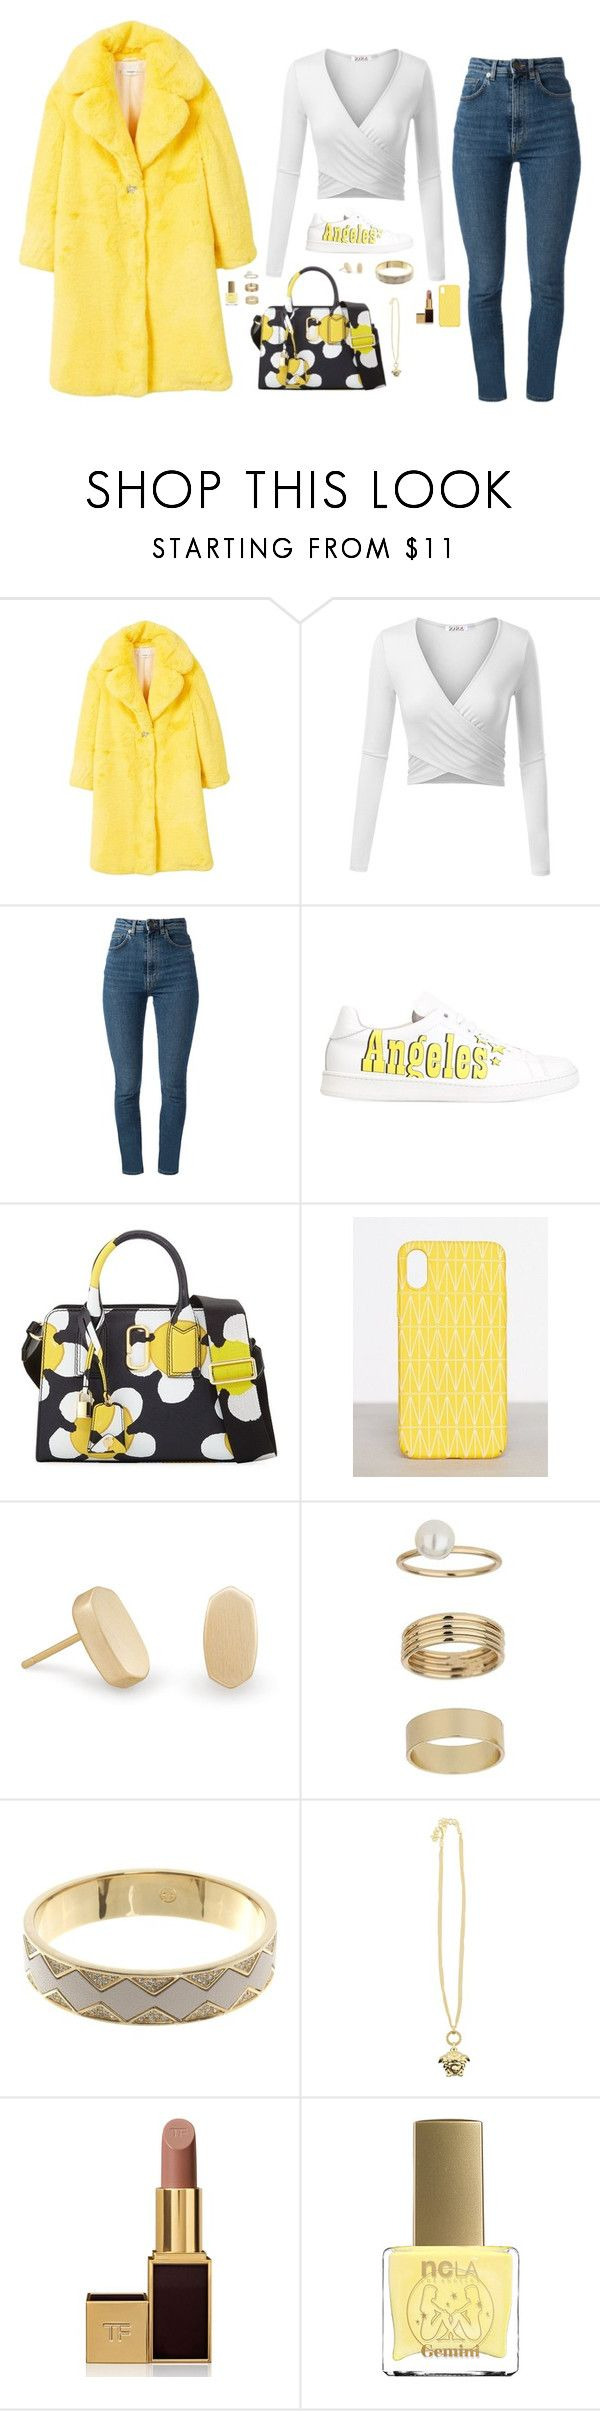 """Untitled #1559"" by nine-nine ❤ liked on Polyvore featuring MANGO, Yves Saint Laurent, Joshua's, Marc Jacobs, Dagmar, Kendra Scott, Miss Selfridge, House of Harlow 1960, Versace and Tom Ford"